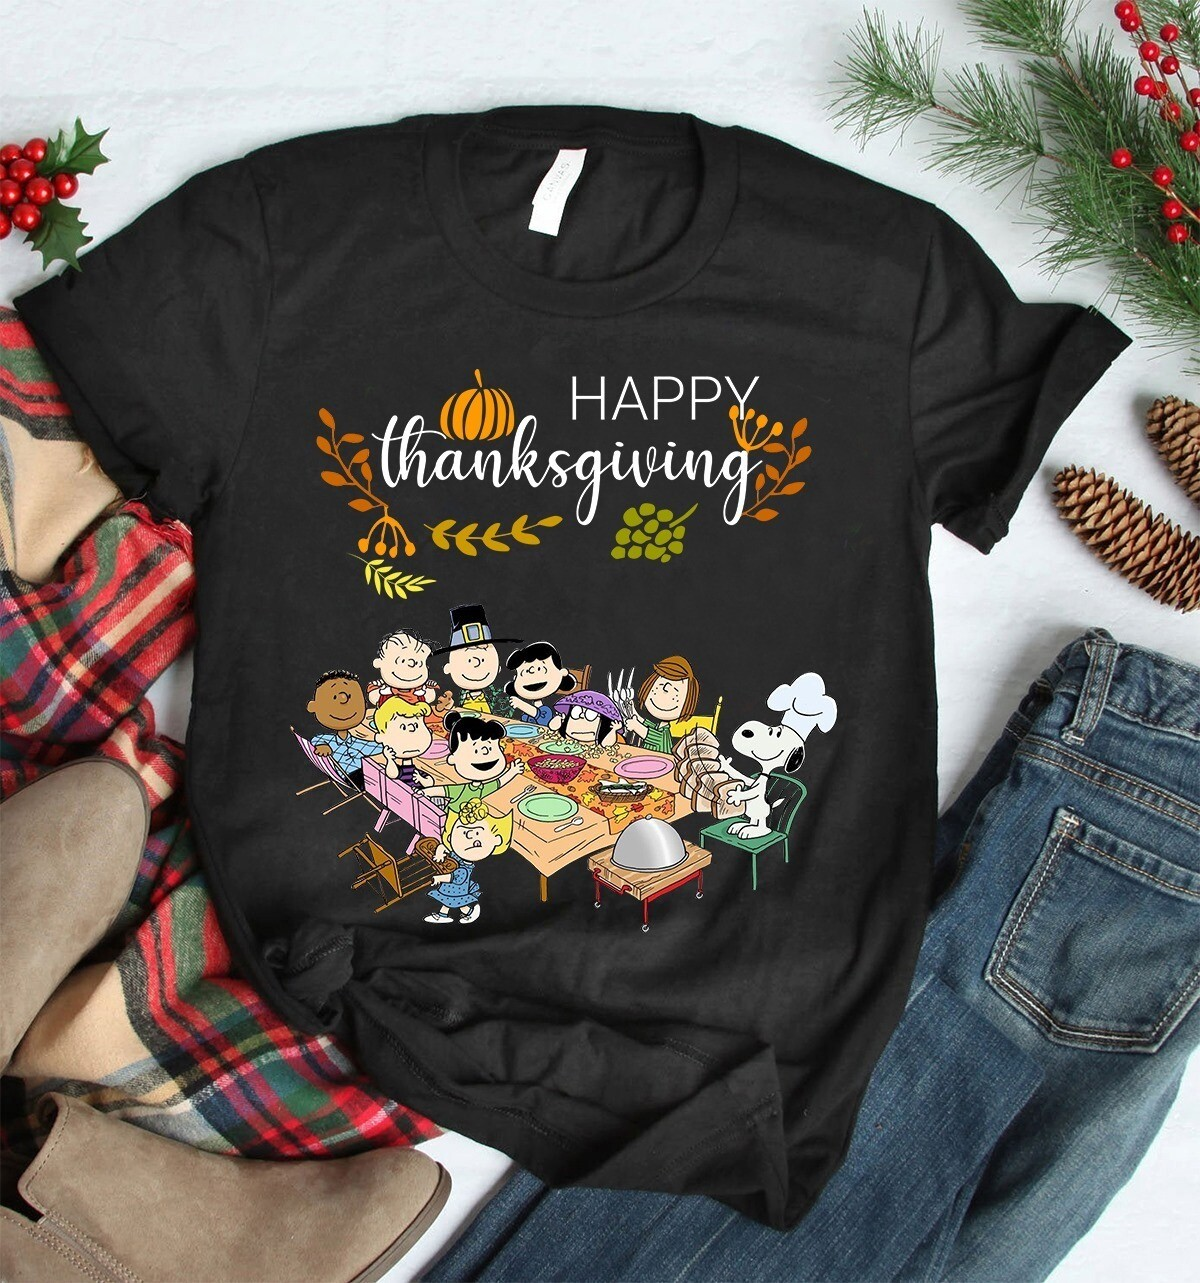 Snoopy Happy Thanksgiving Shirt, snoopy  Thanksgiving Gifts for Friends, Ugly Shirt Sweater Hoodie For Women Men, Snoopy shirt, Christmas Gift, Snowflake, Disney shirt, Disney Family Shirts, Snowmen